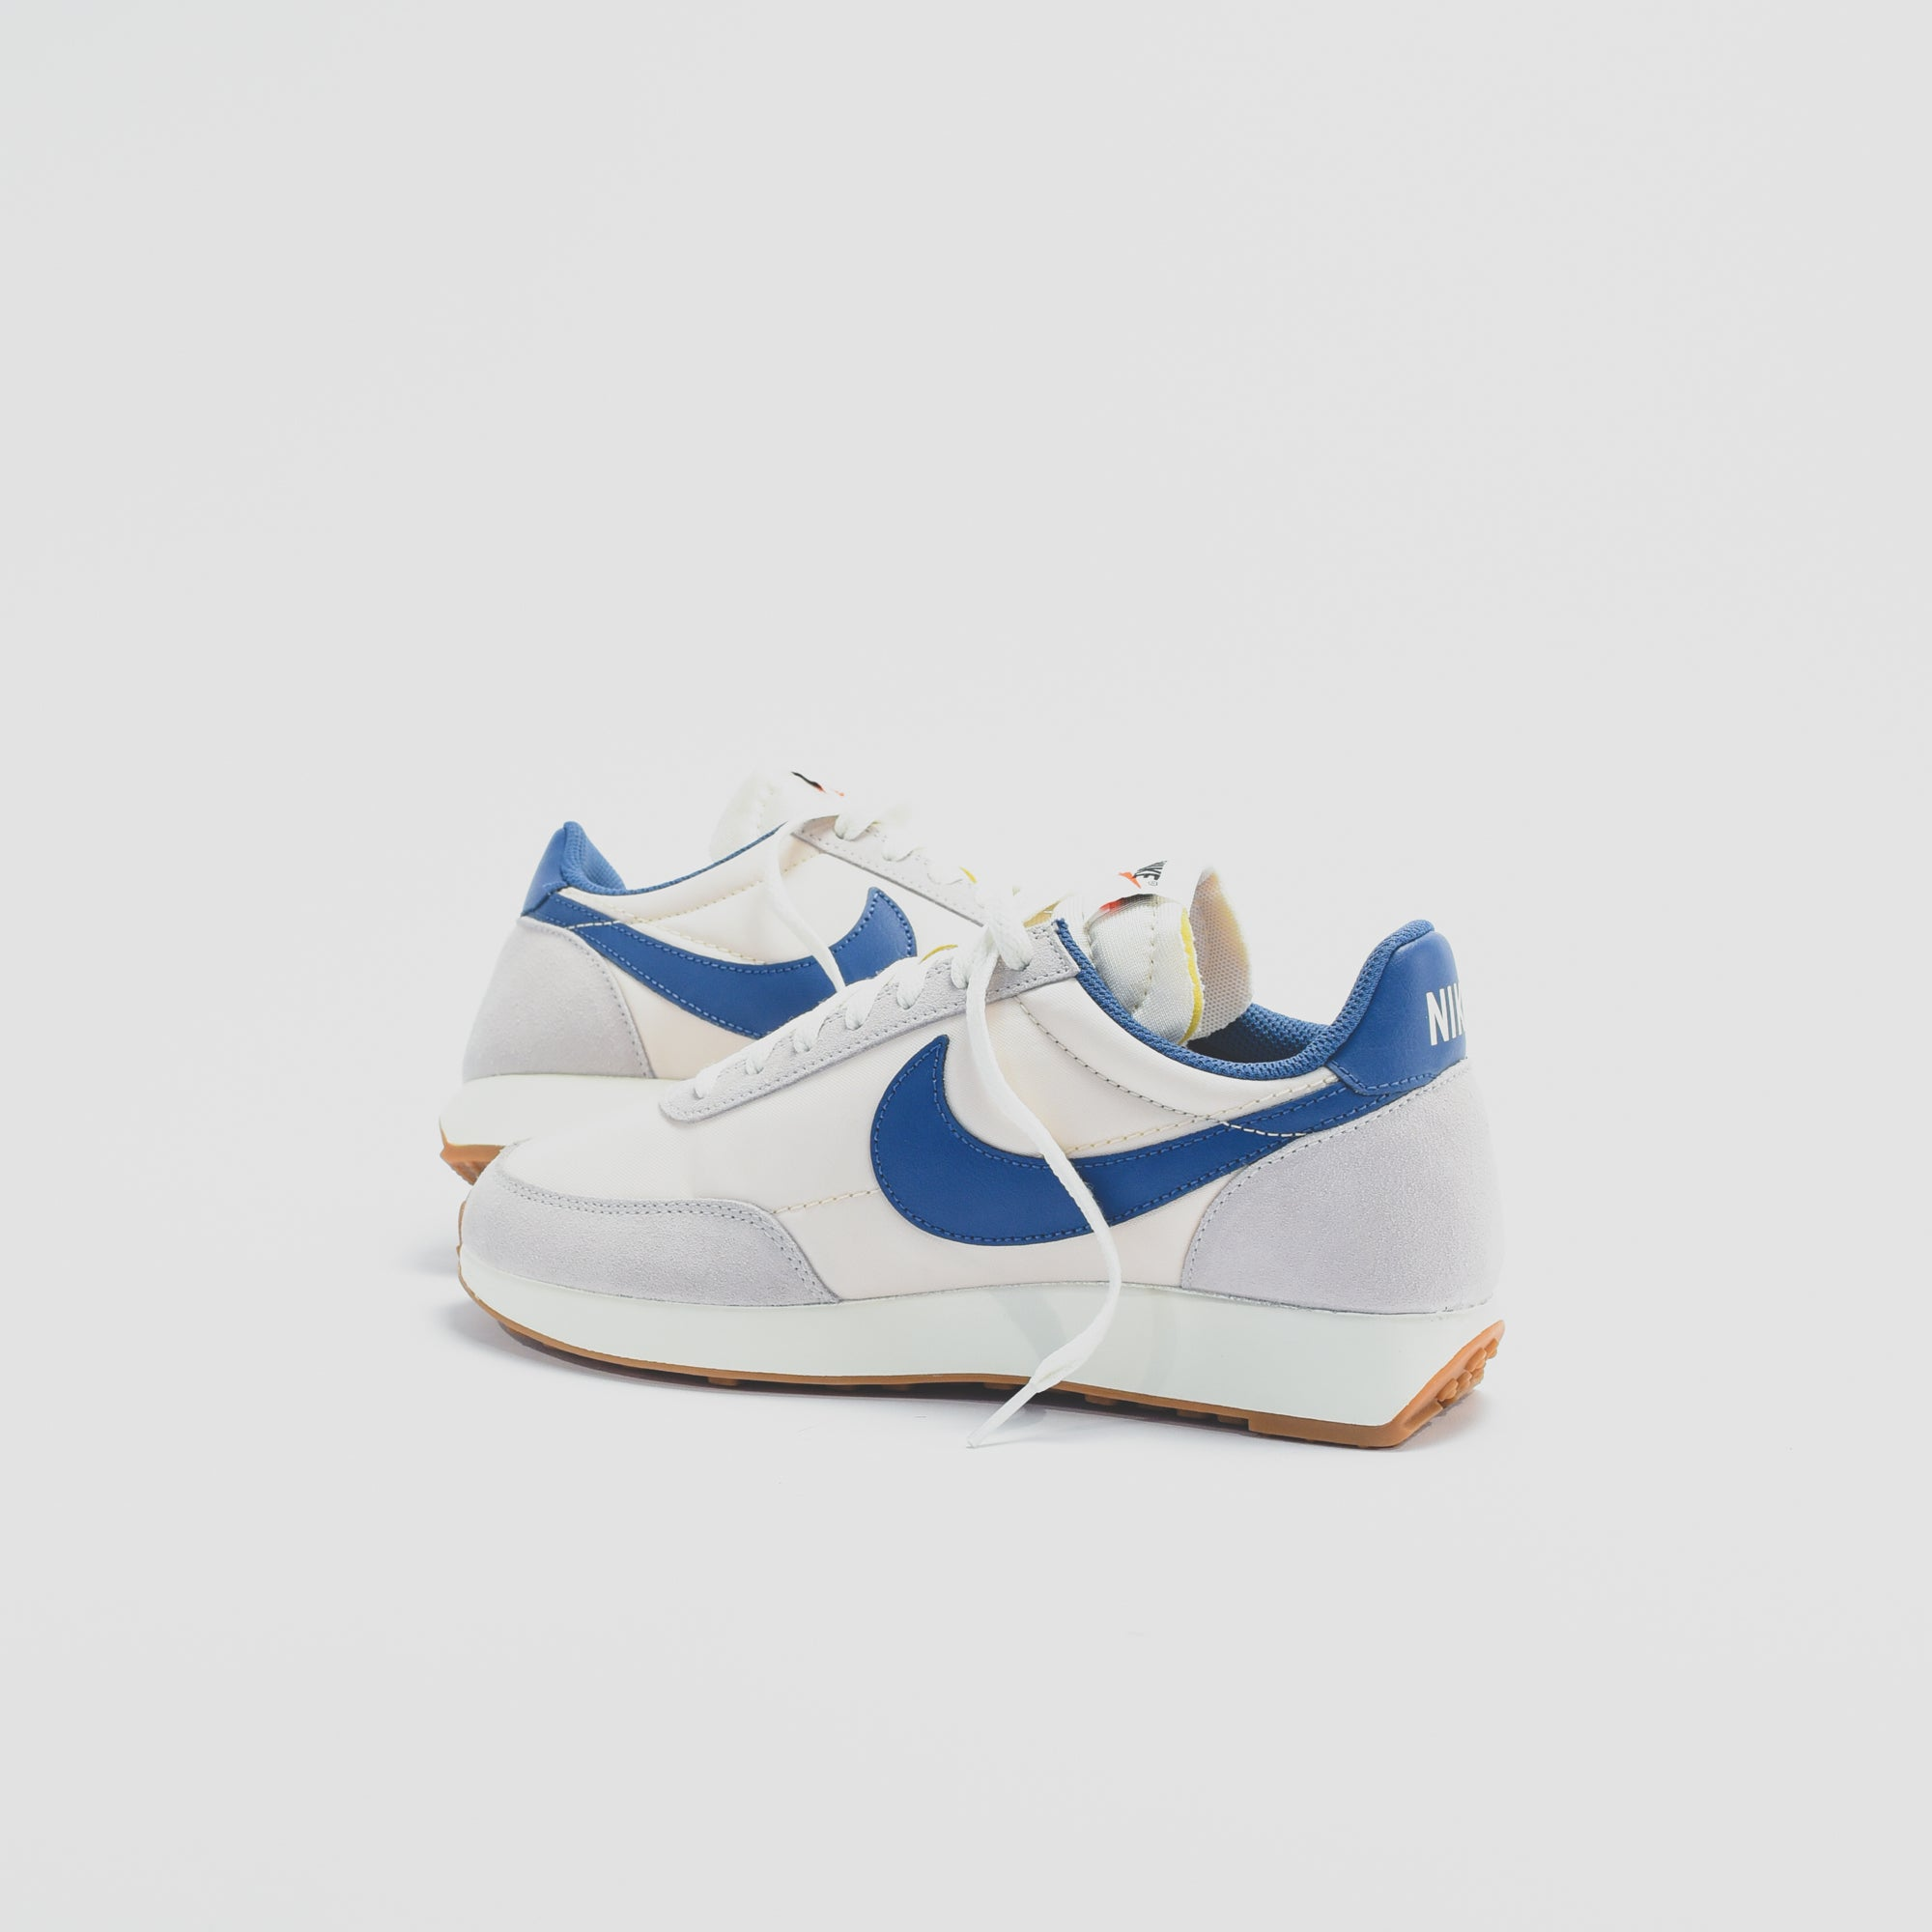 sports shoes a298c d8adc Nike Air Tailwind '79 - Vast Grey / Mystic Navy / Light ...